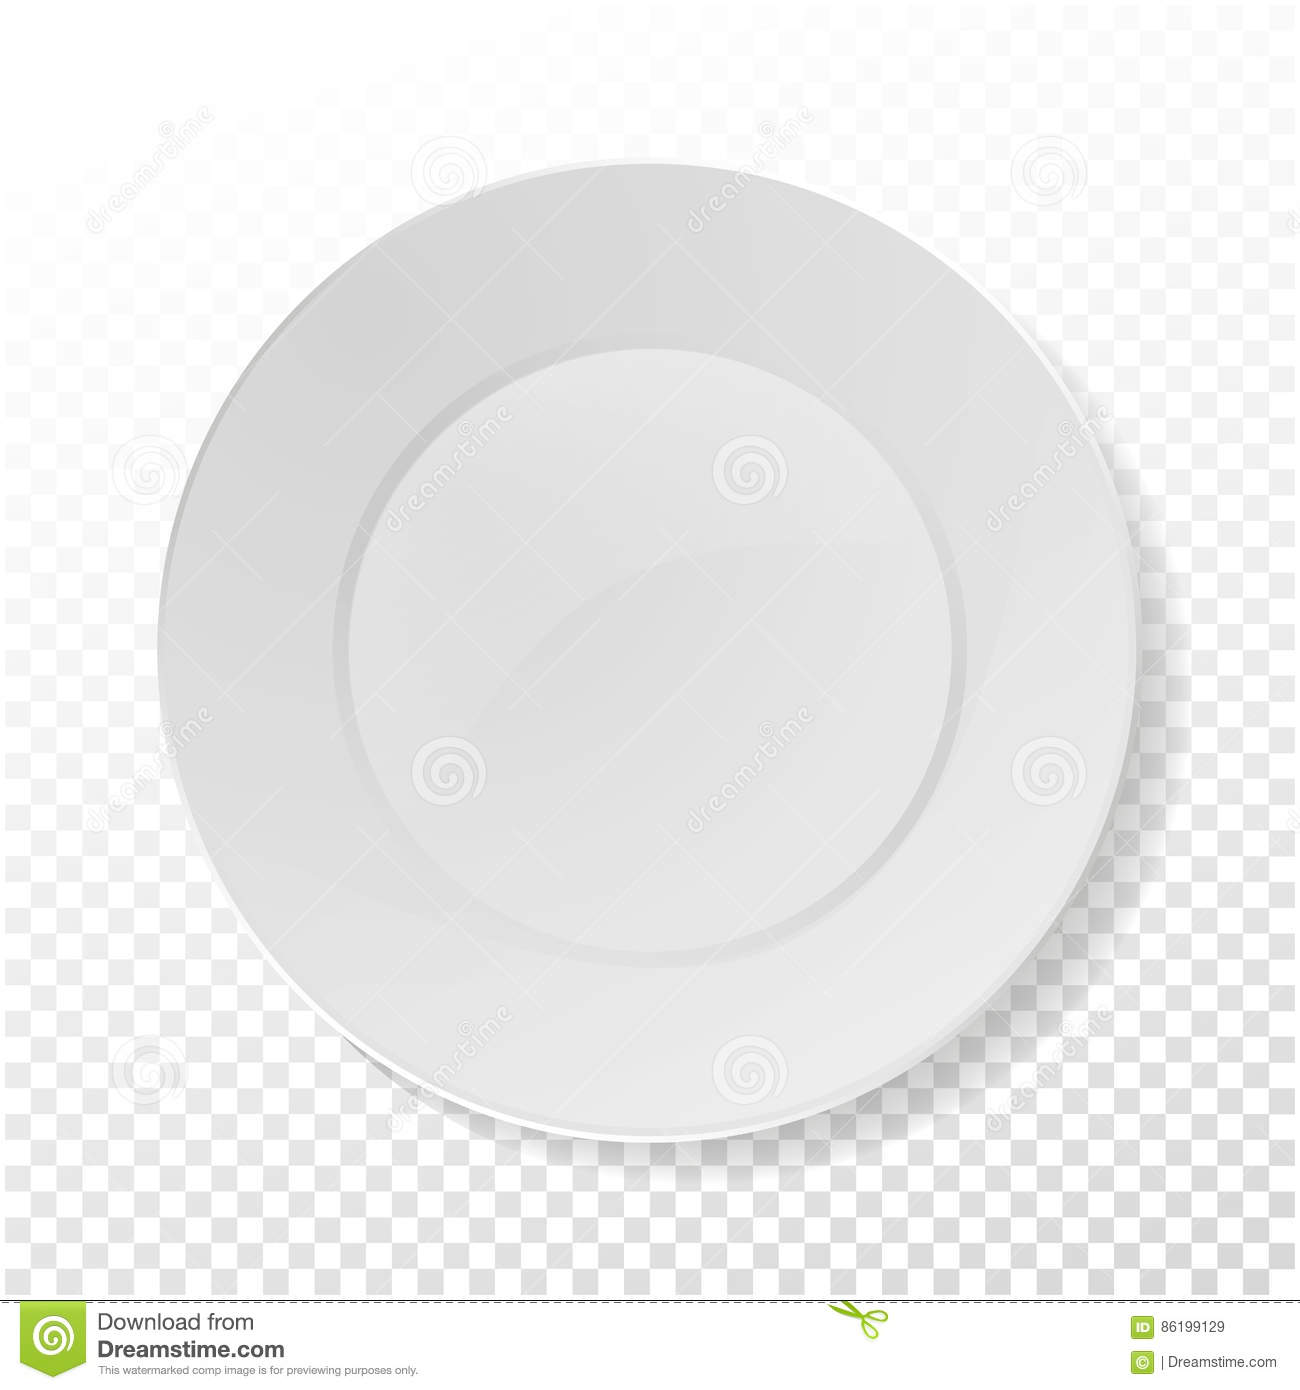 Realistic Plate Vector. Closeup Porcelain Mock Up Tableware On ...